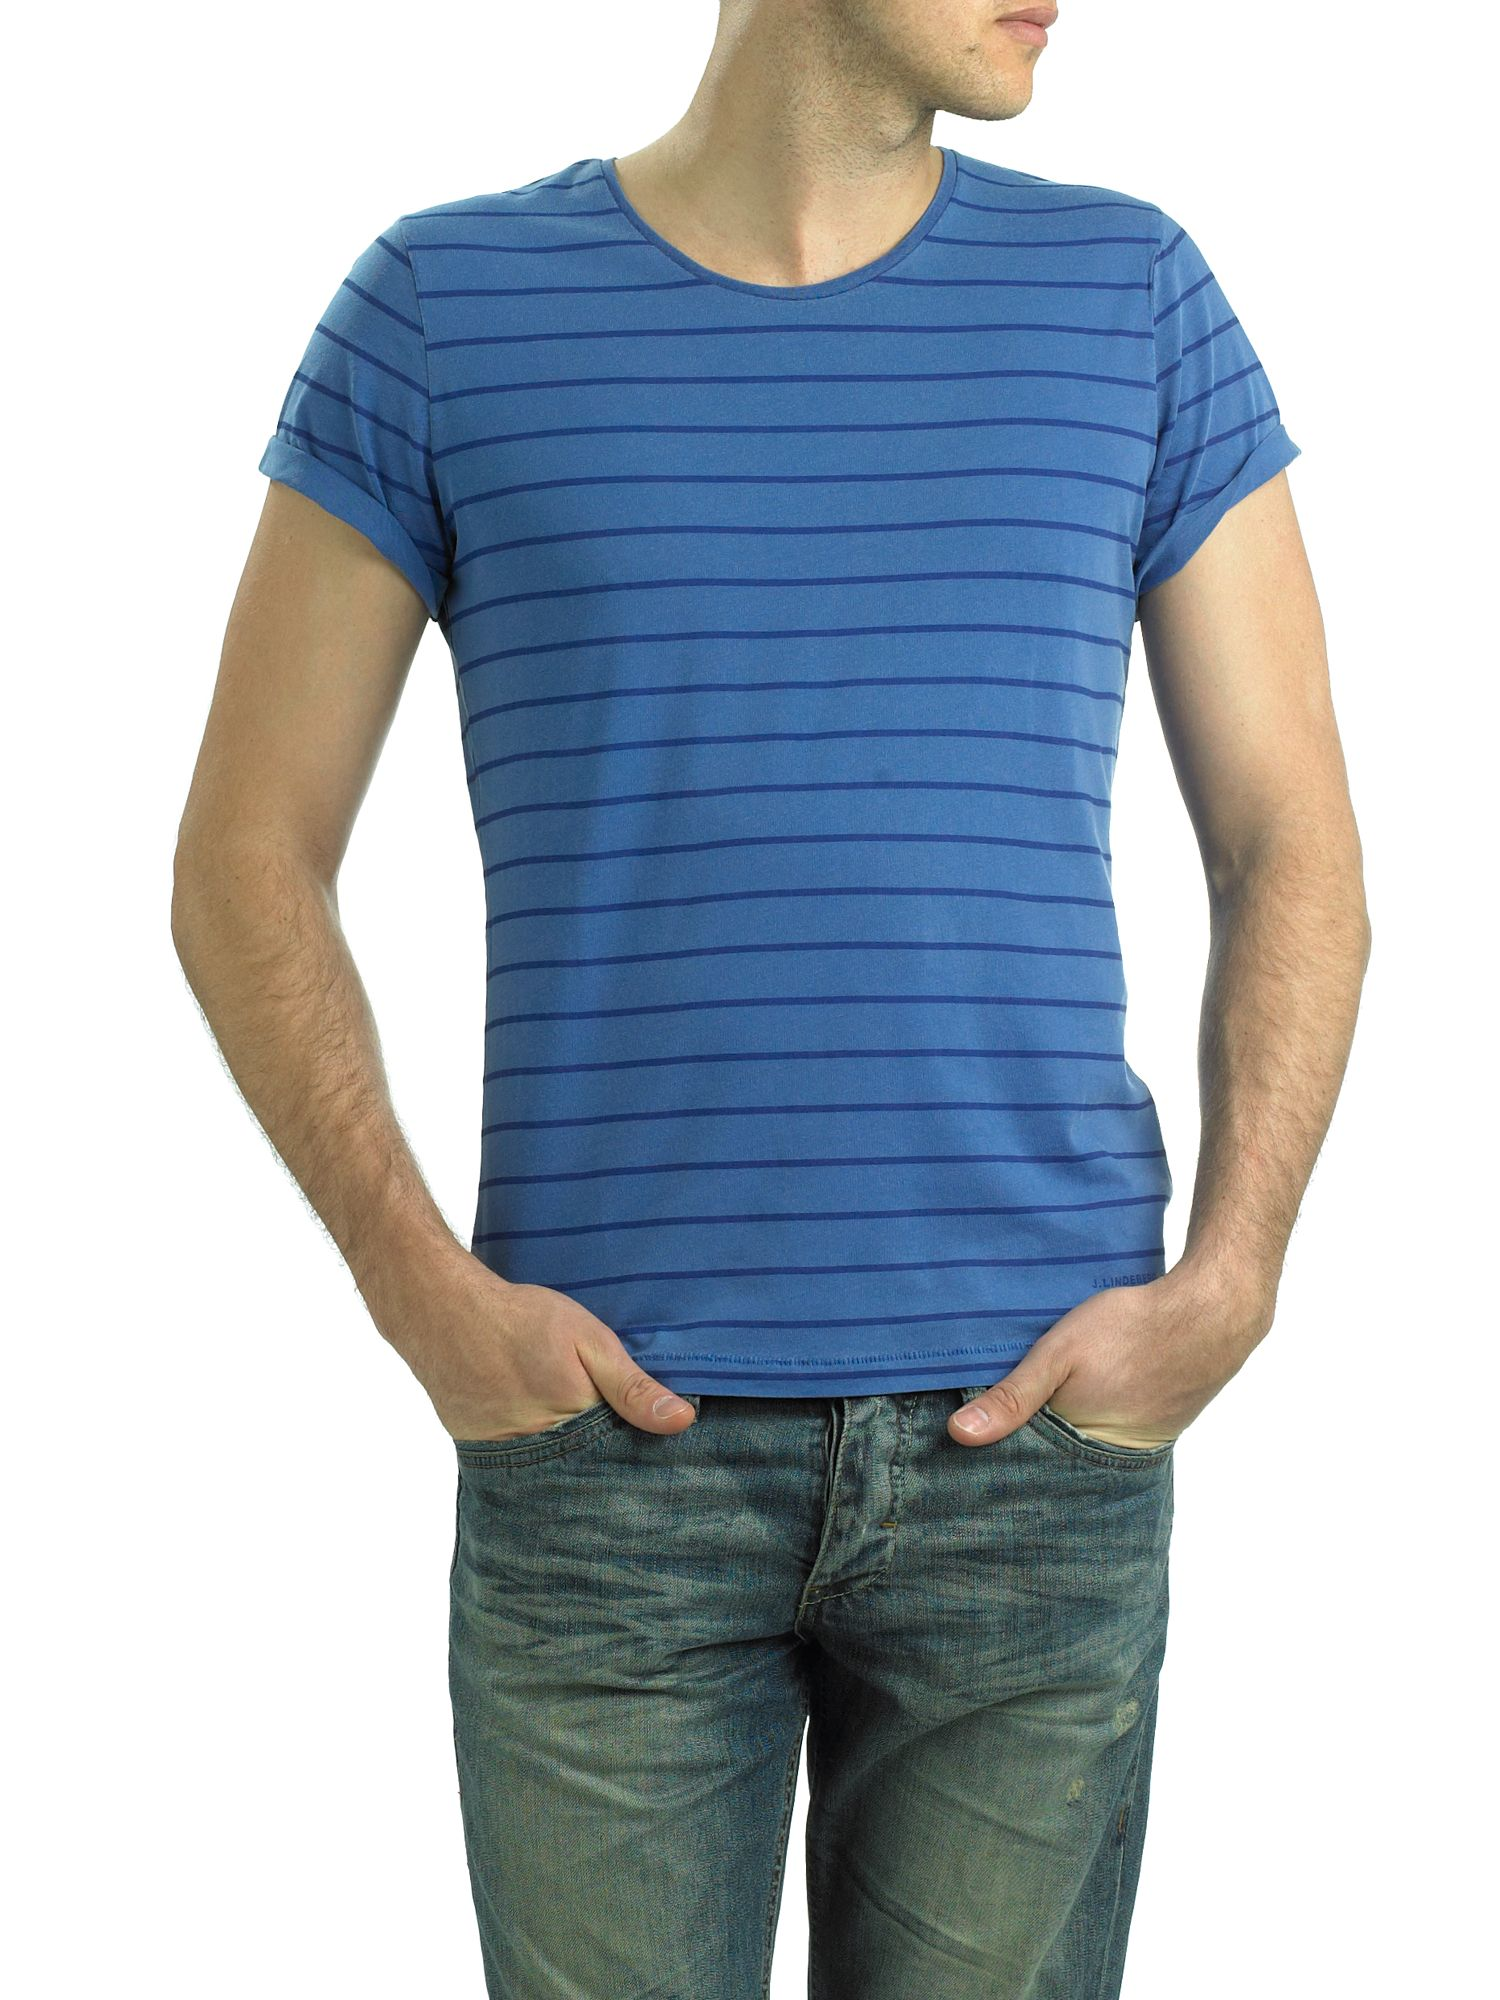 J Lindeberg Striped T-shirt product image